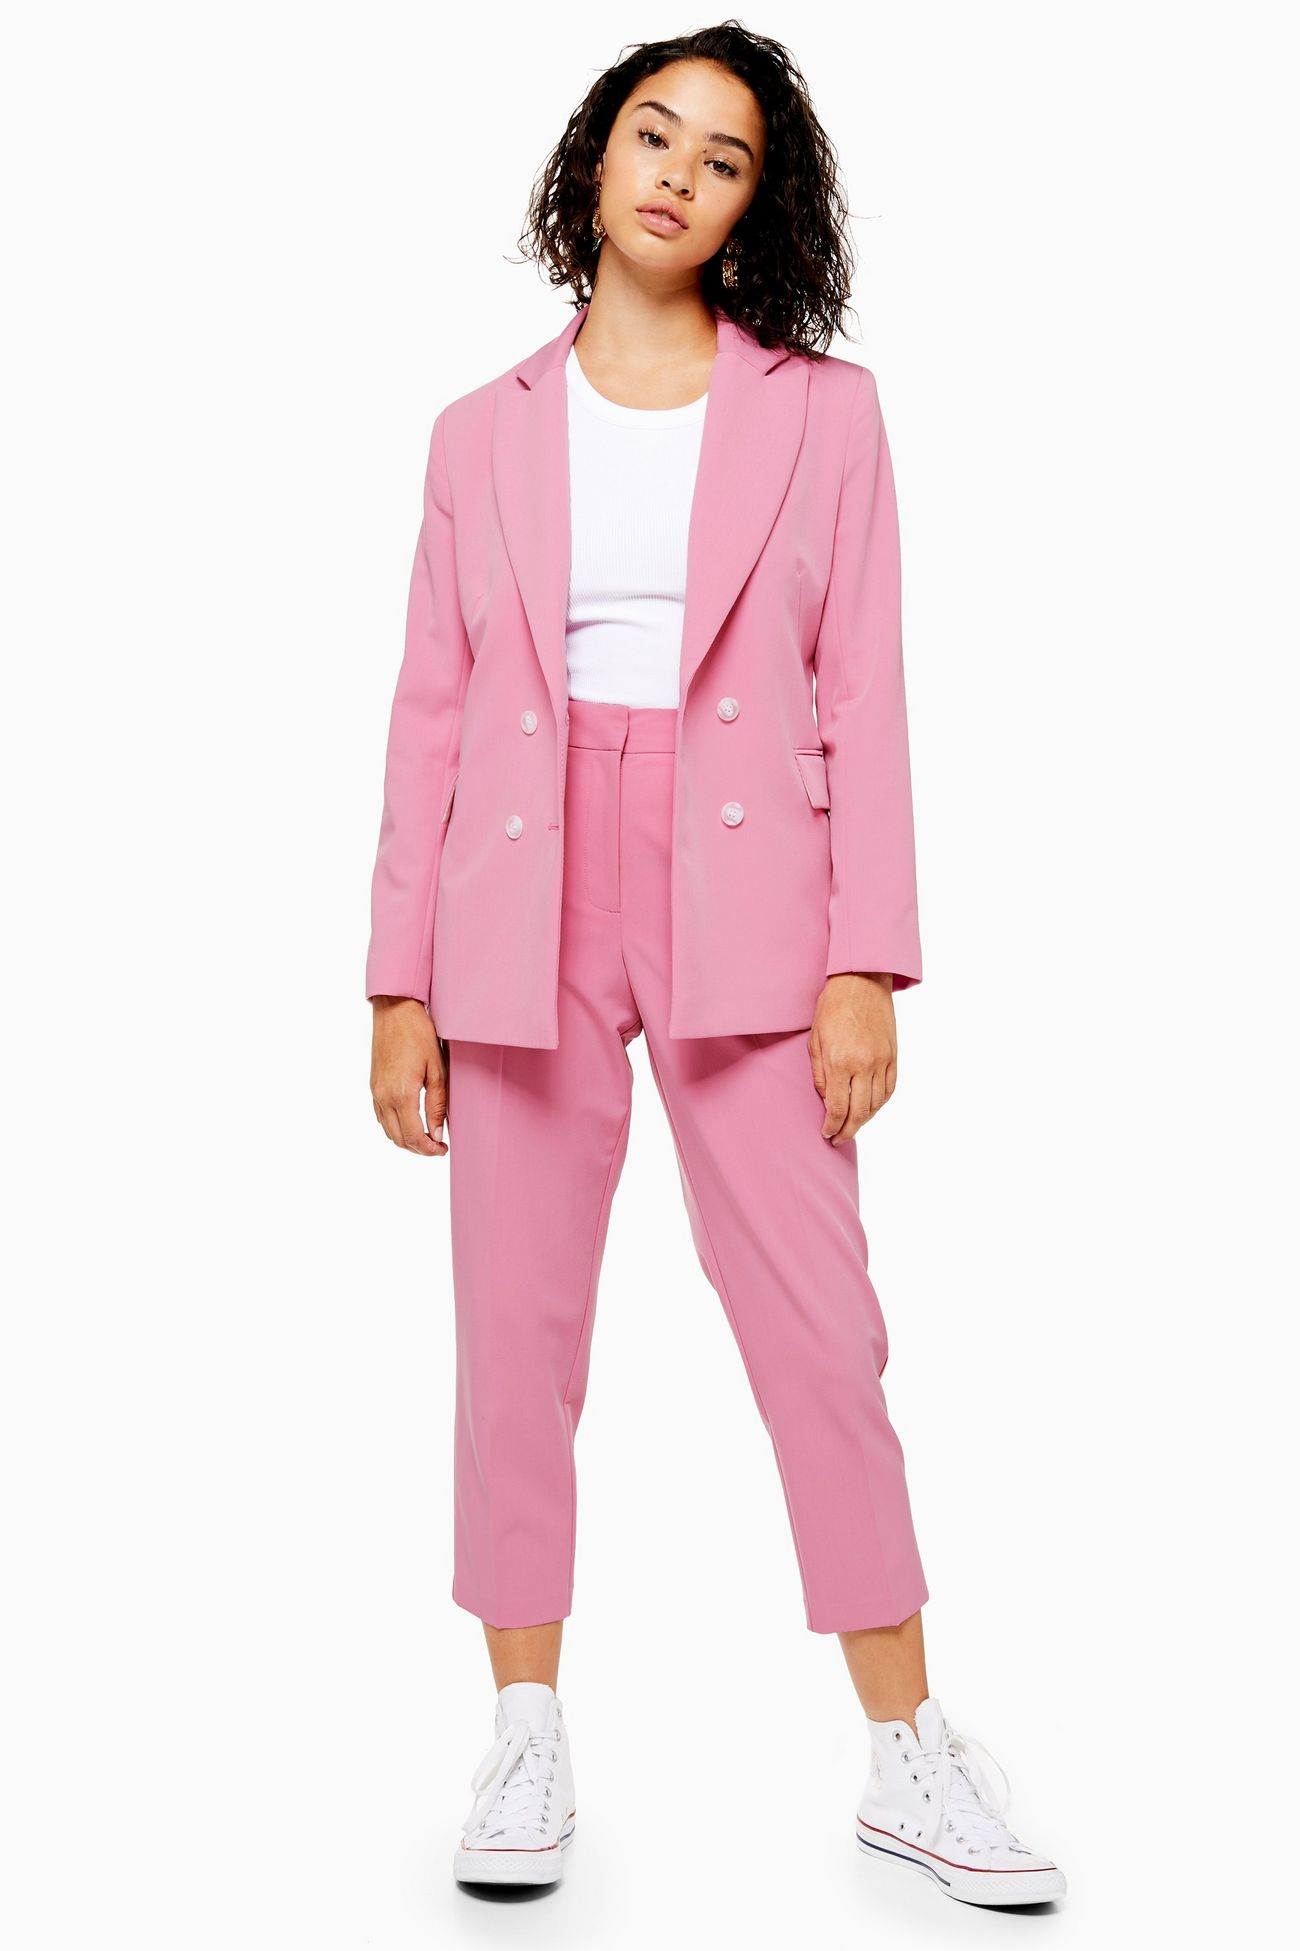 Topshop Petite Pink Double Breasted Suit Jacket; Petite Pink Suit Trousers